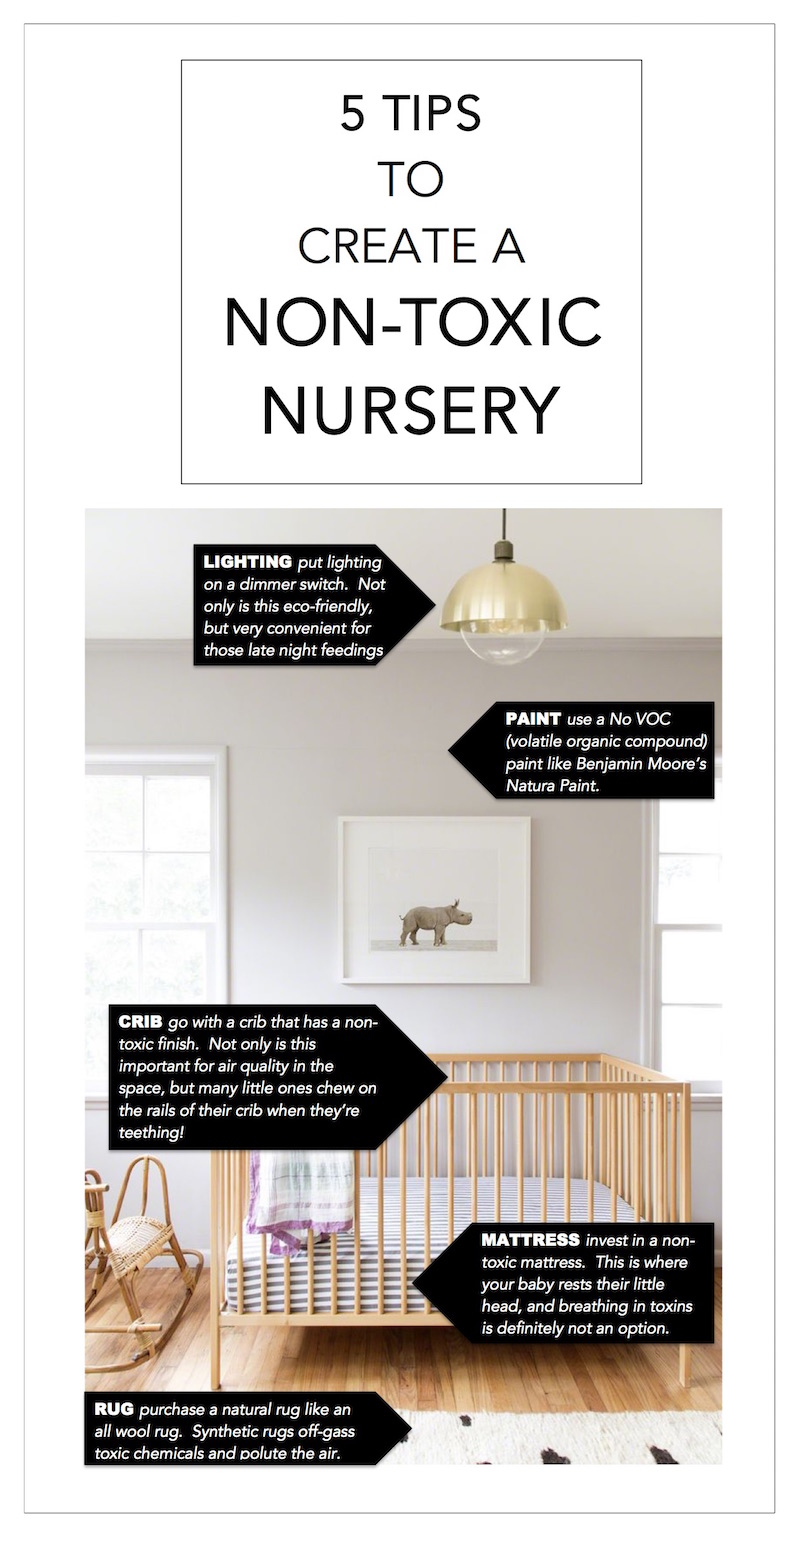 5 TIPS - NON TOXIC NURSERY PINTEREST